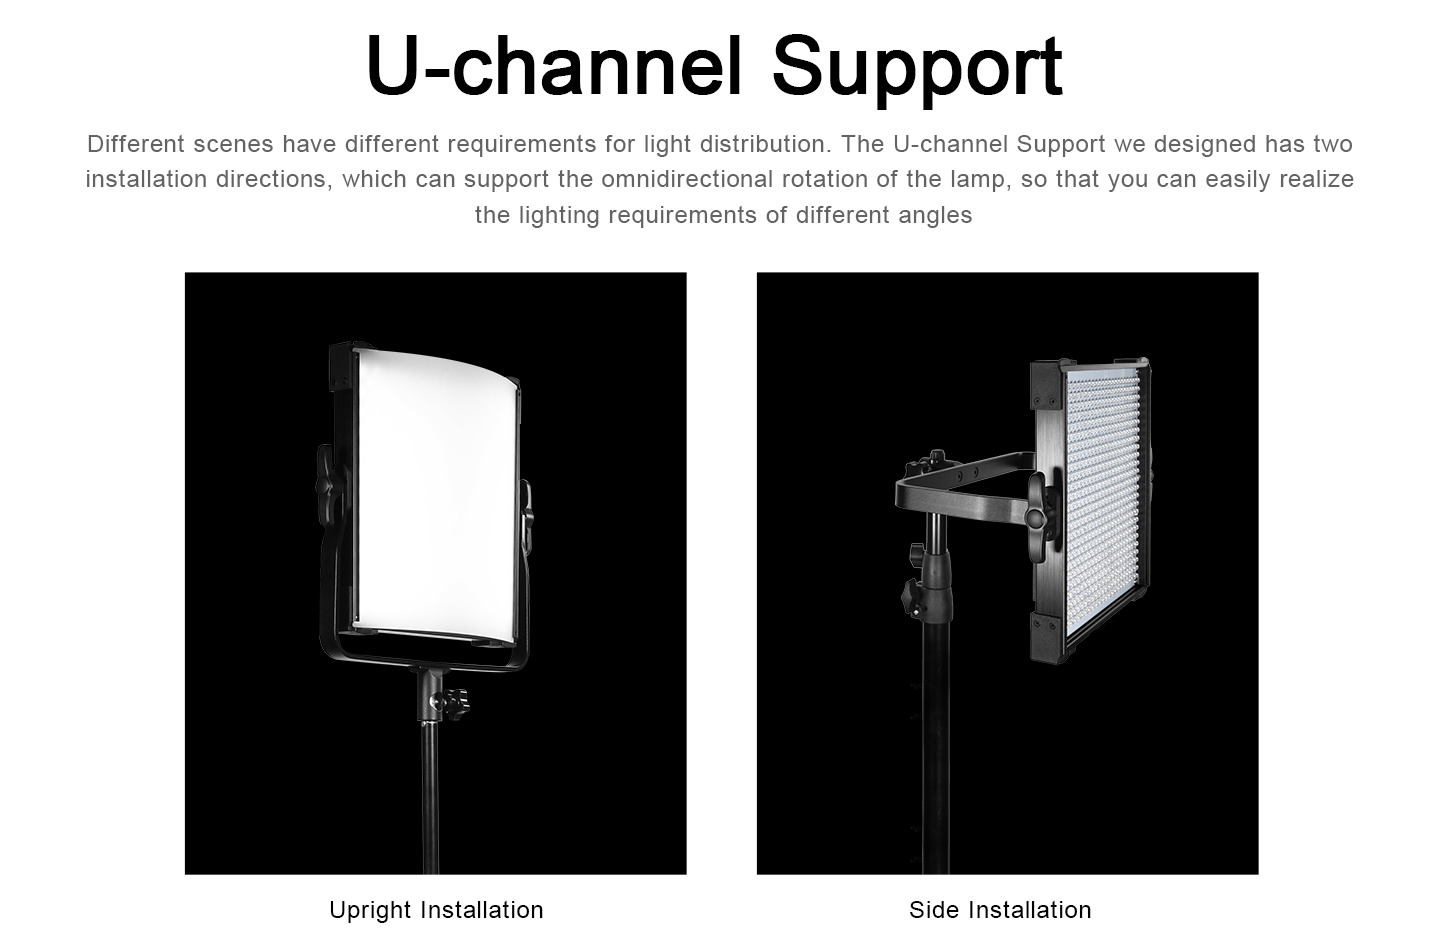 U-channel Support